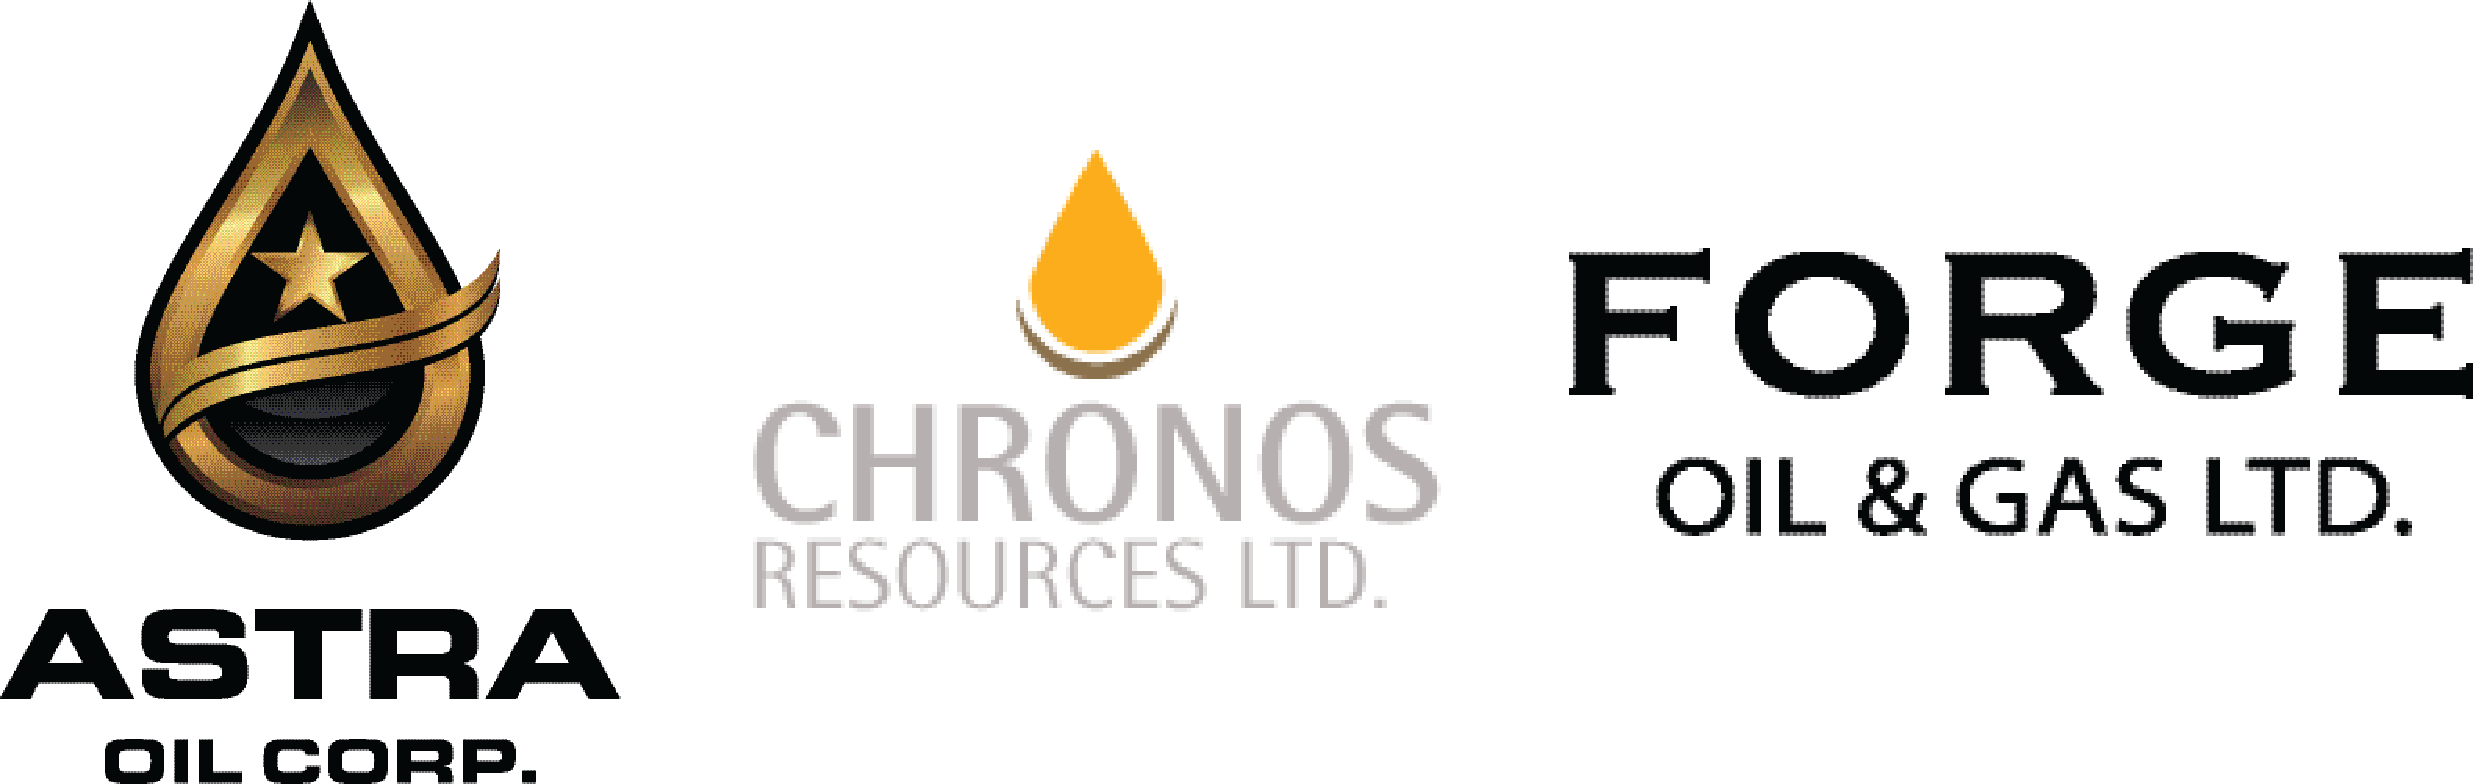 Credence Resources Logos